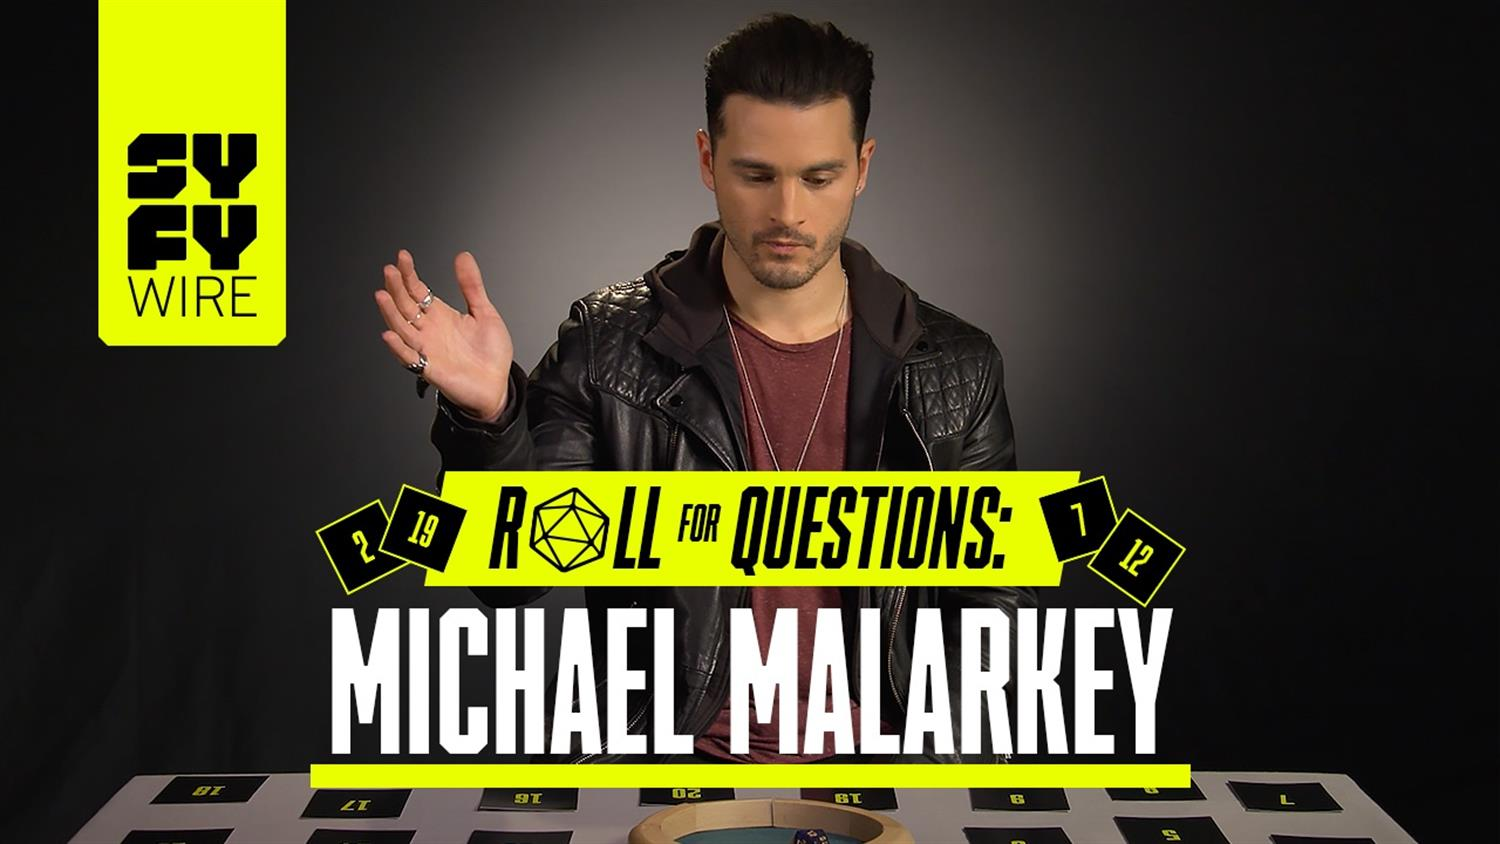 Michael Malarkey Answers If He's A Vampire (Roll For Questions)